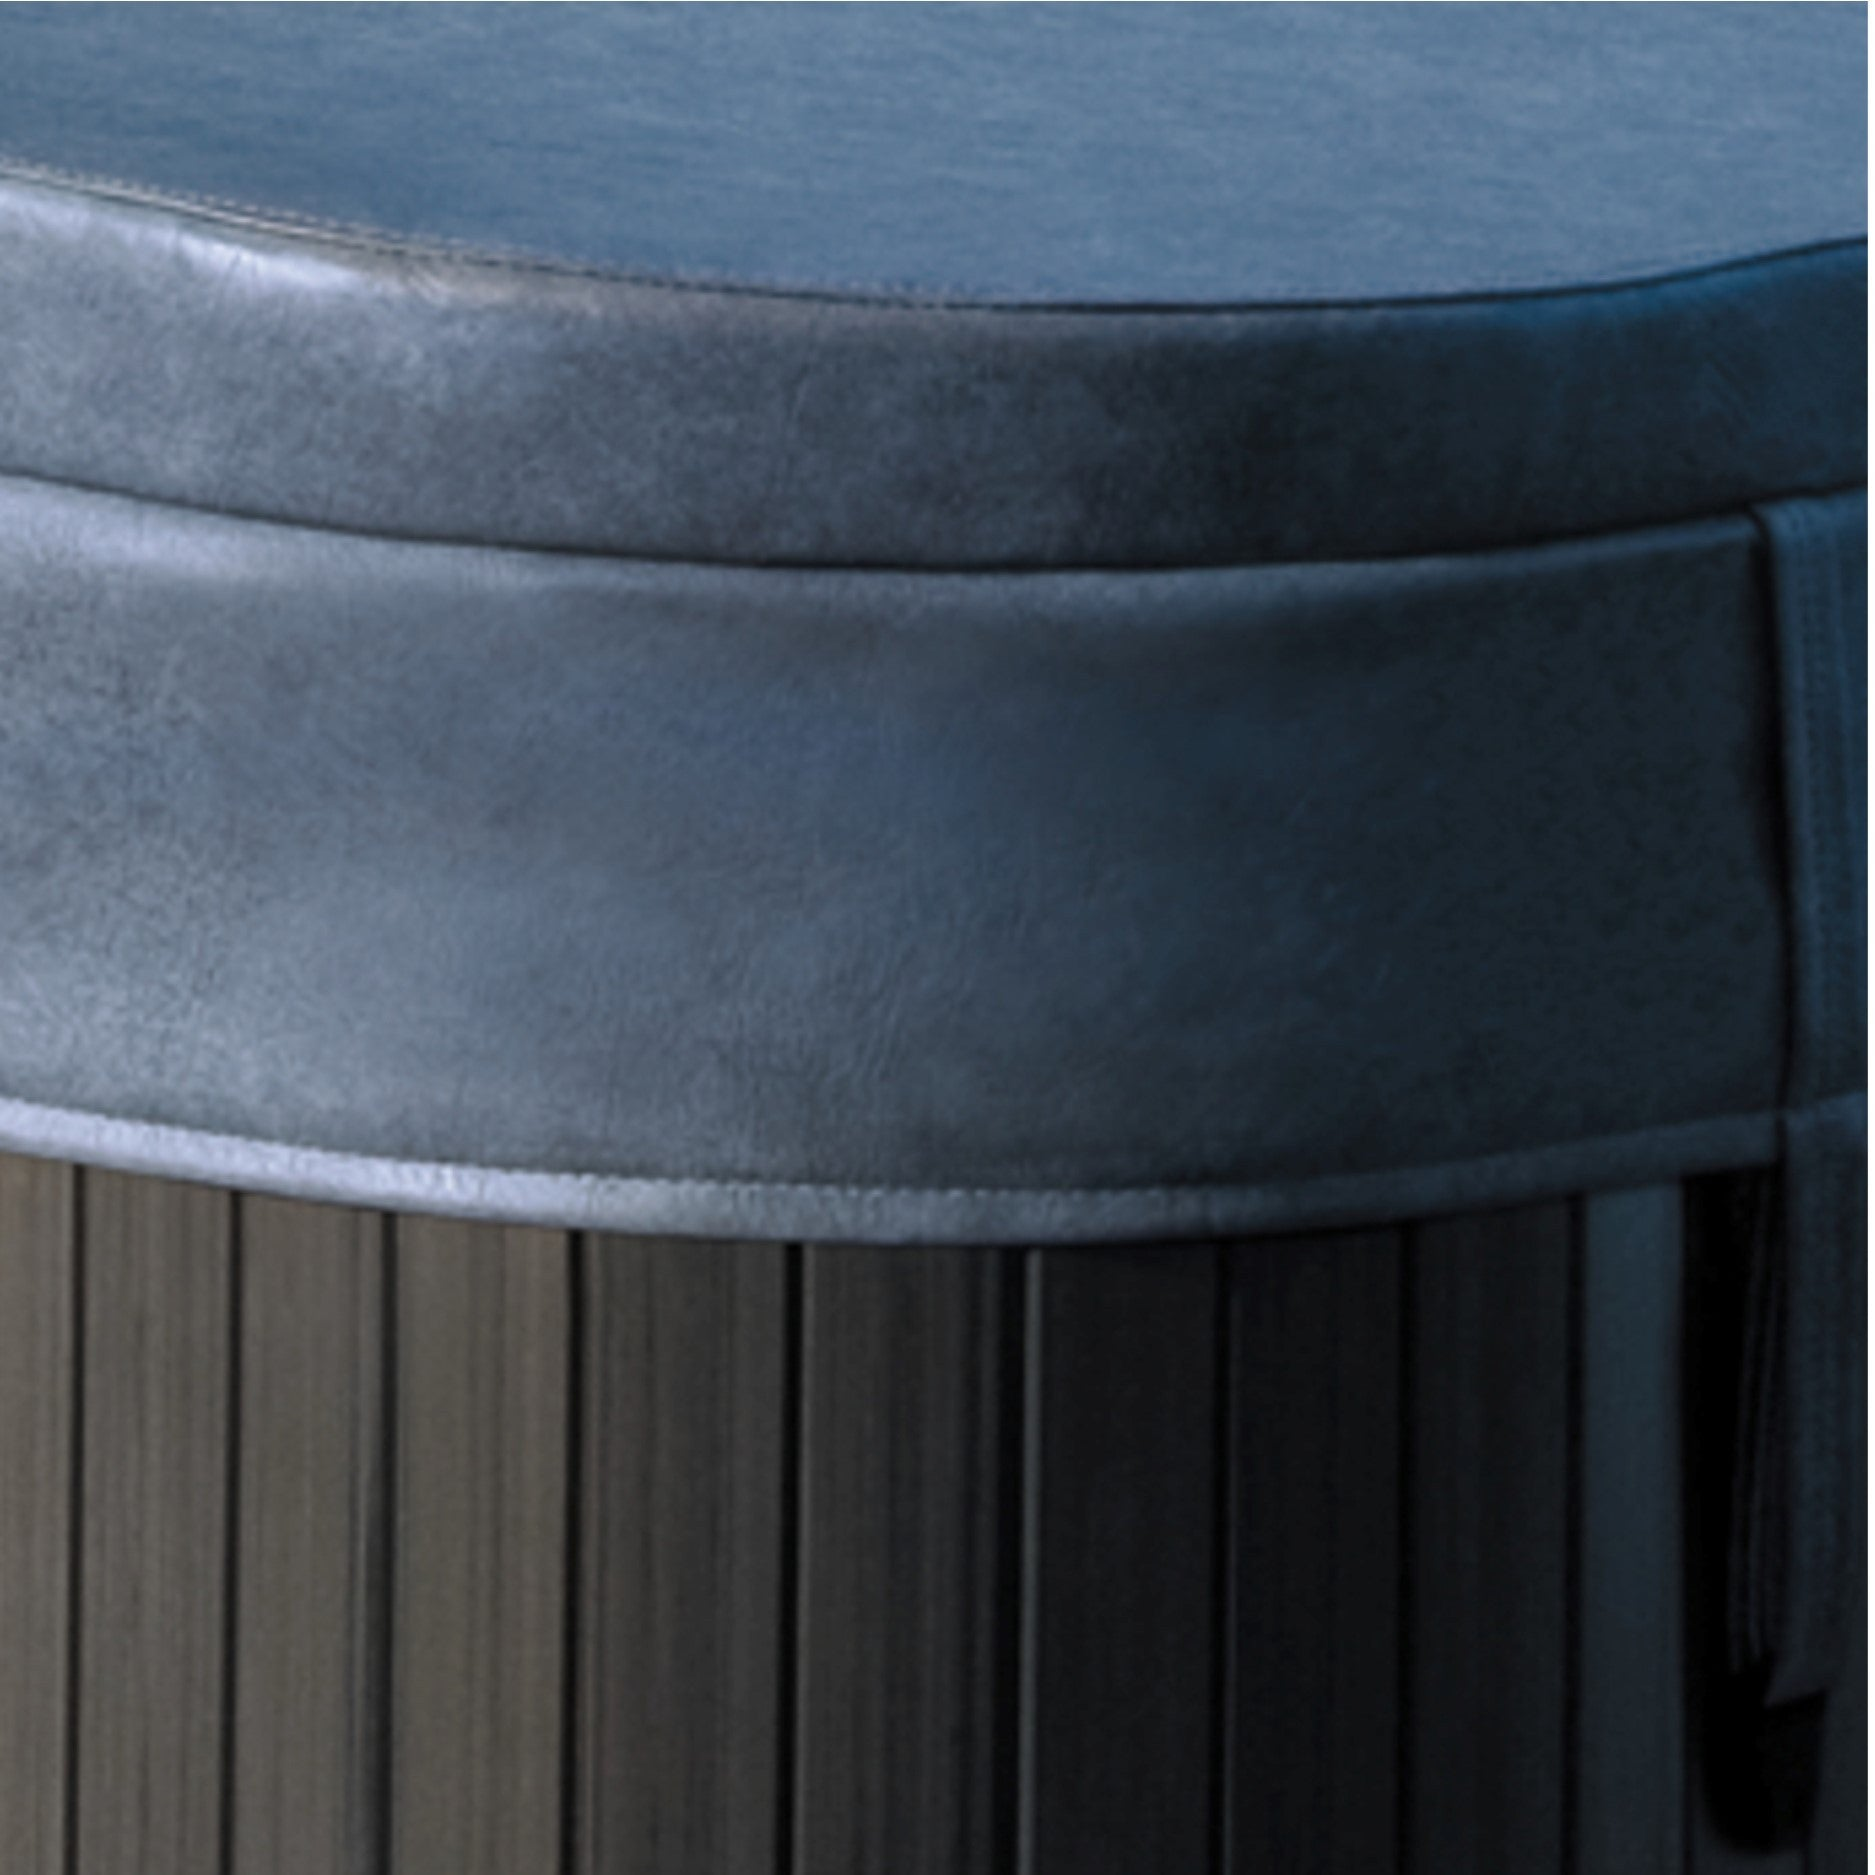 Buy a Jacuzzi J-465 Hot Tub Cover | Jacuzzi Direct